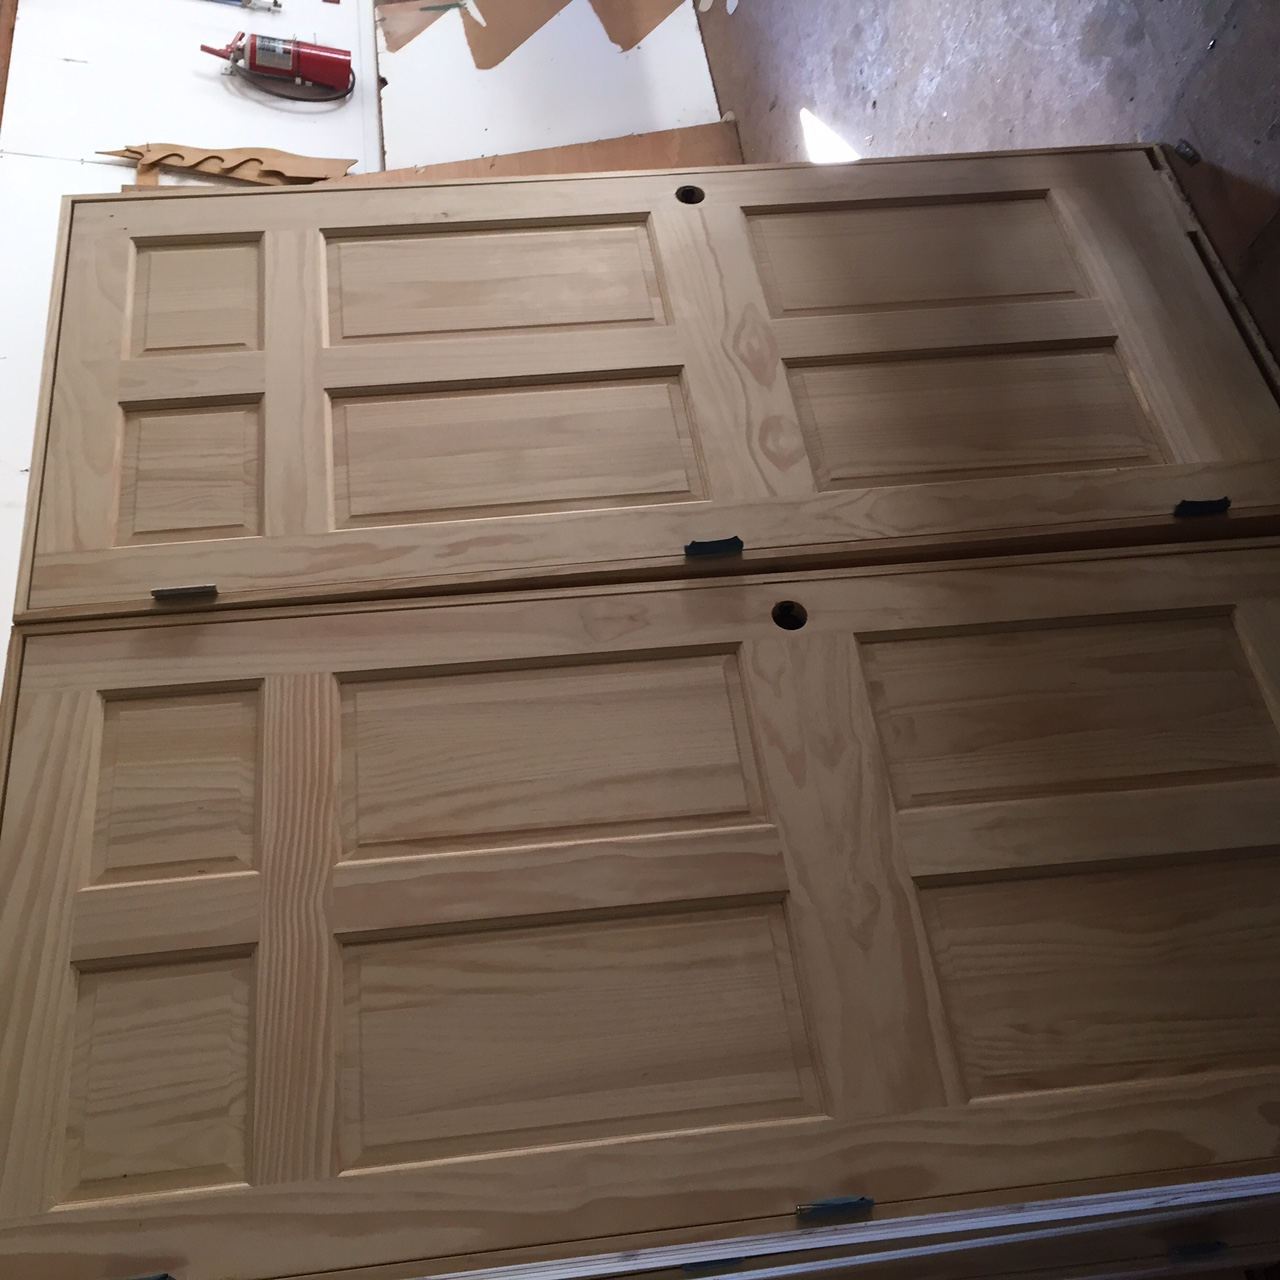 4704 CUSTOM DOORS KNOTTY PINE INTERIOR PREHUNG DOORS Amish Custom Doors Img  Of Prehung 6 Panel